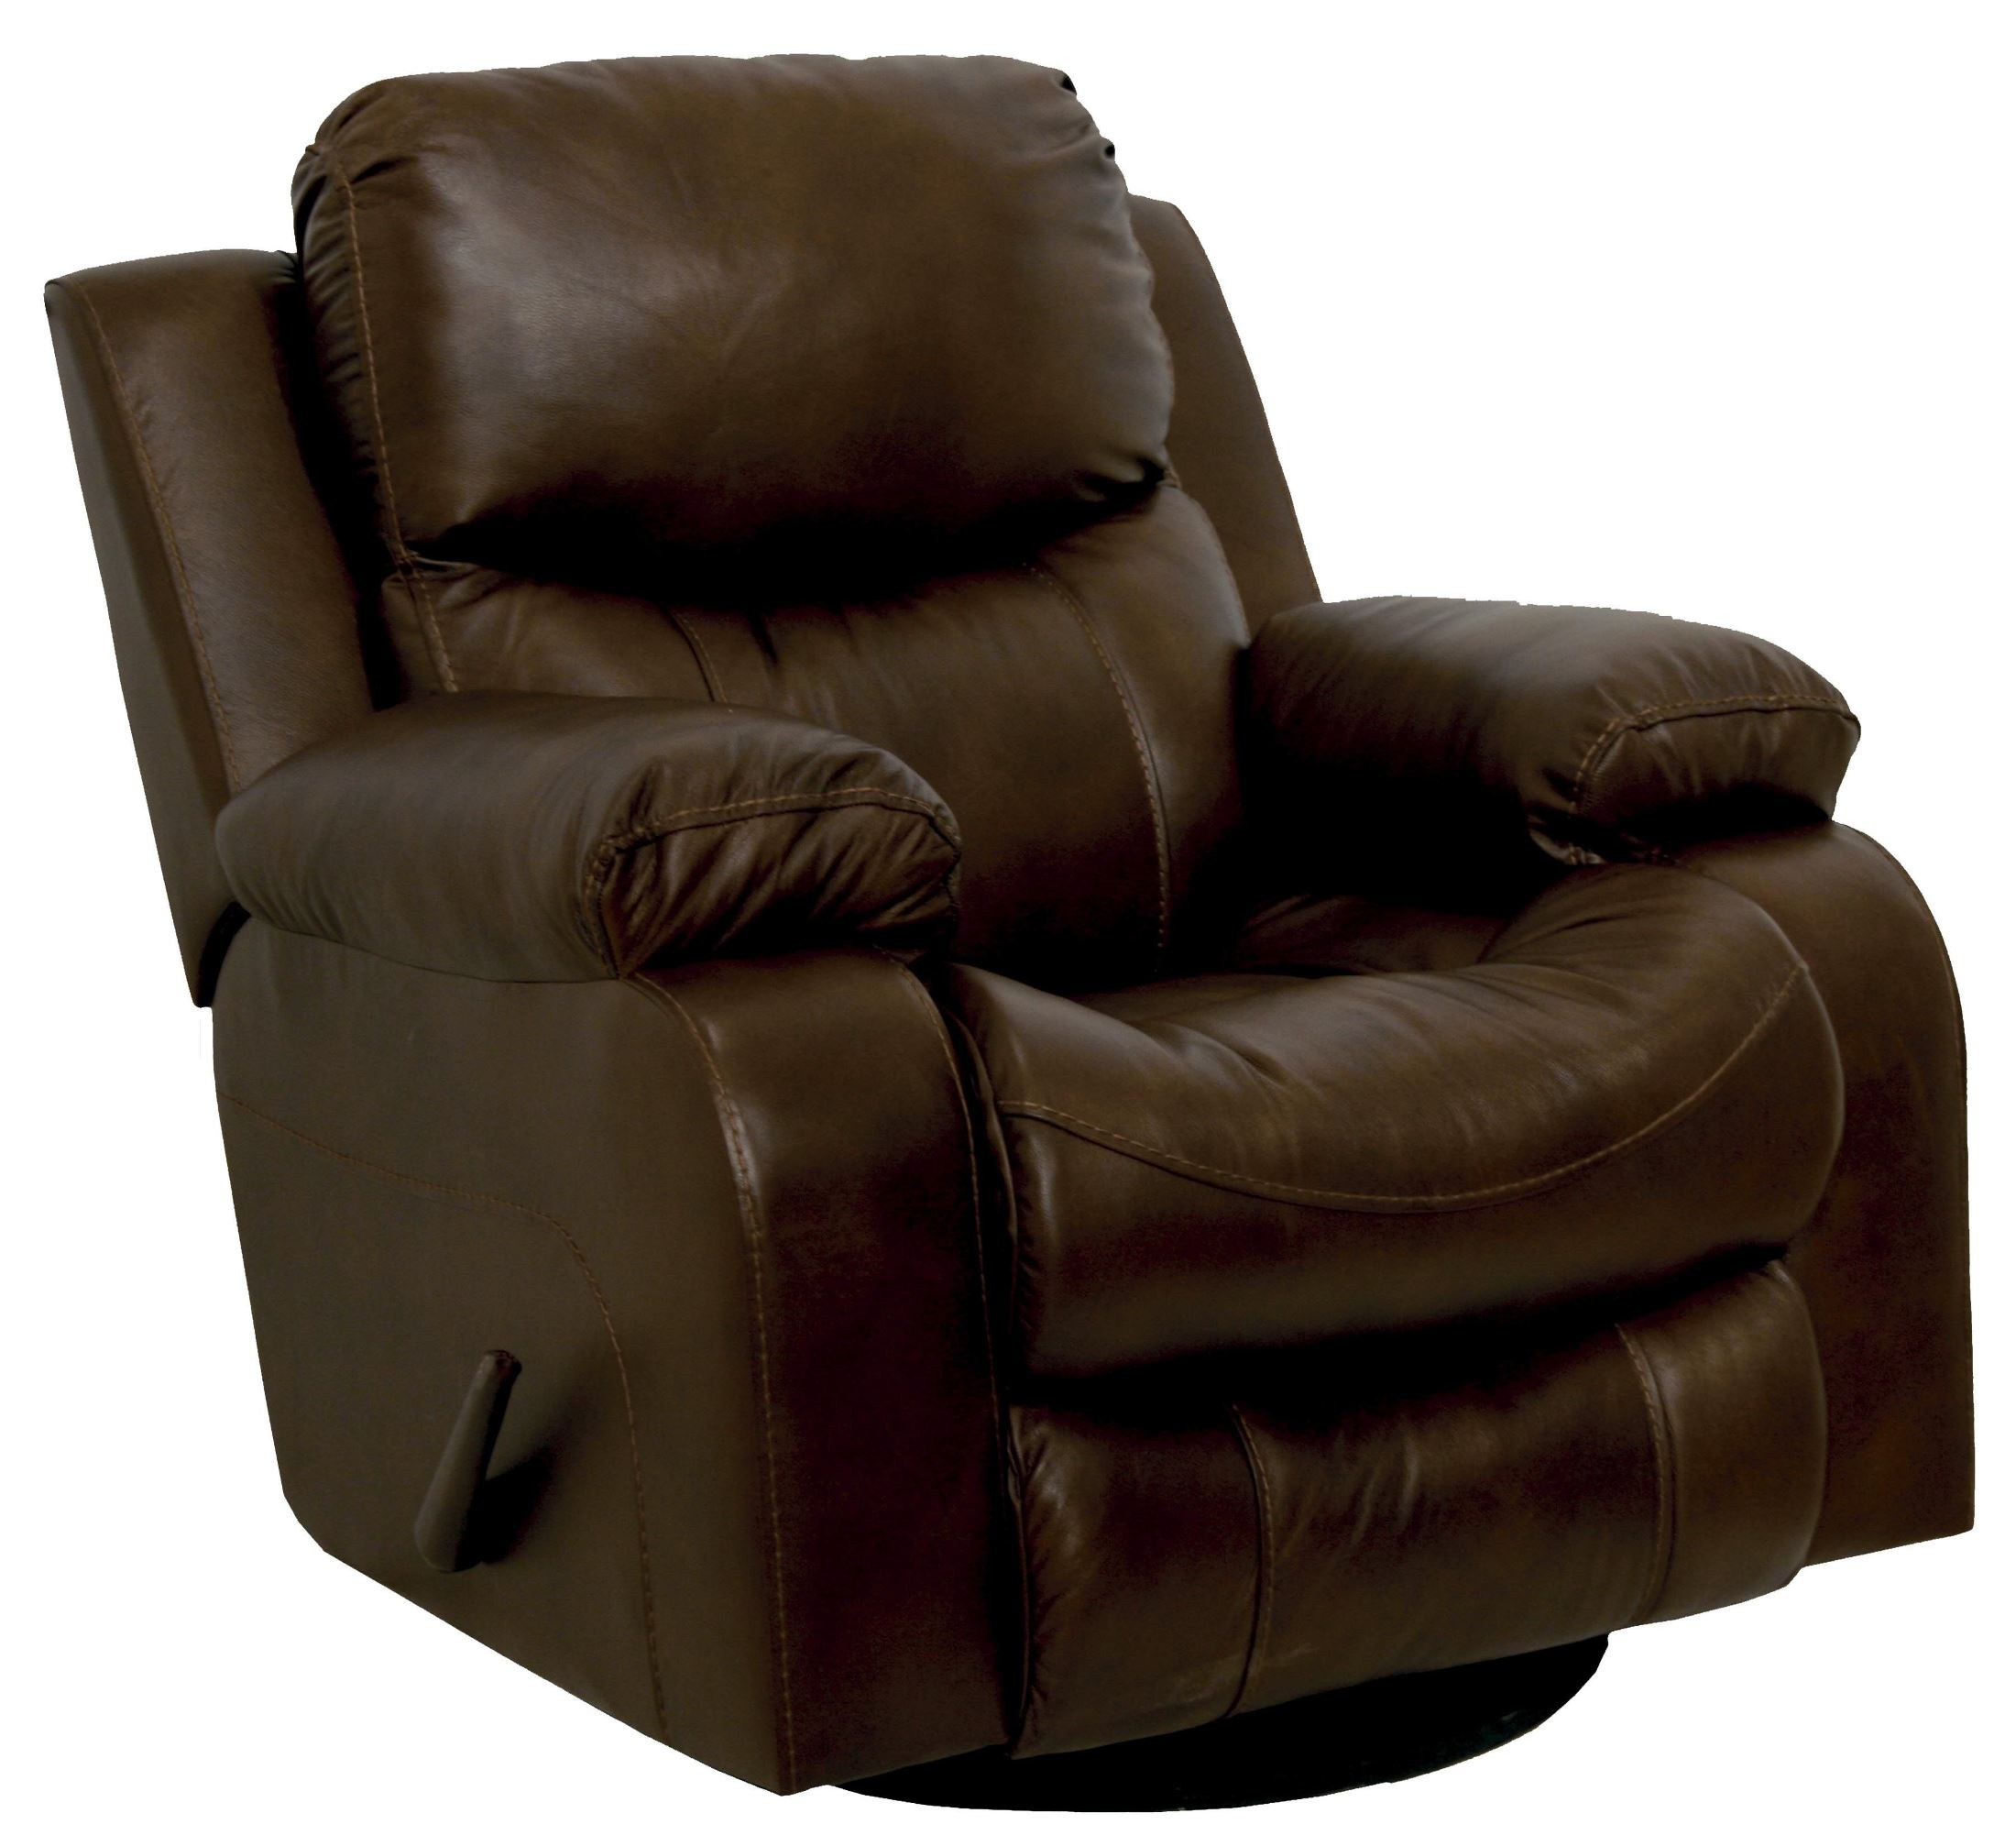 Dallas Tobacco Recliner From Catnapper 49505100000000000 Coleman Furniture